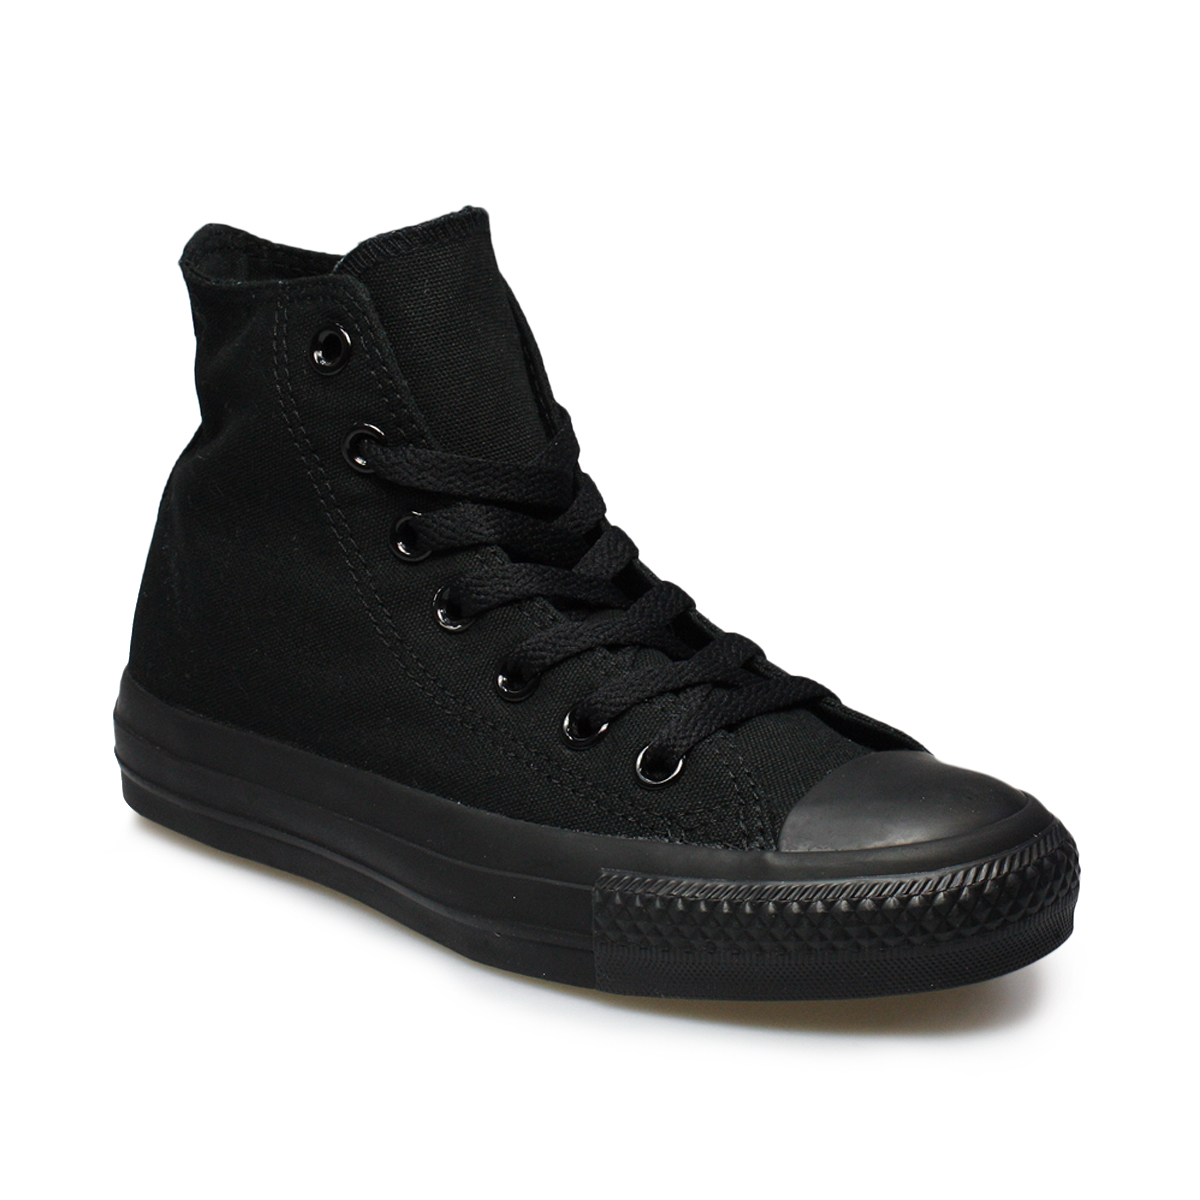 Mens High Top Sneakers Size 12